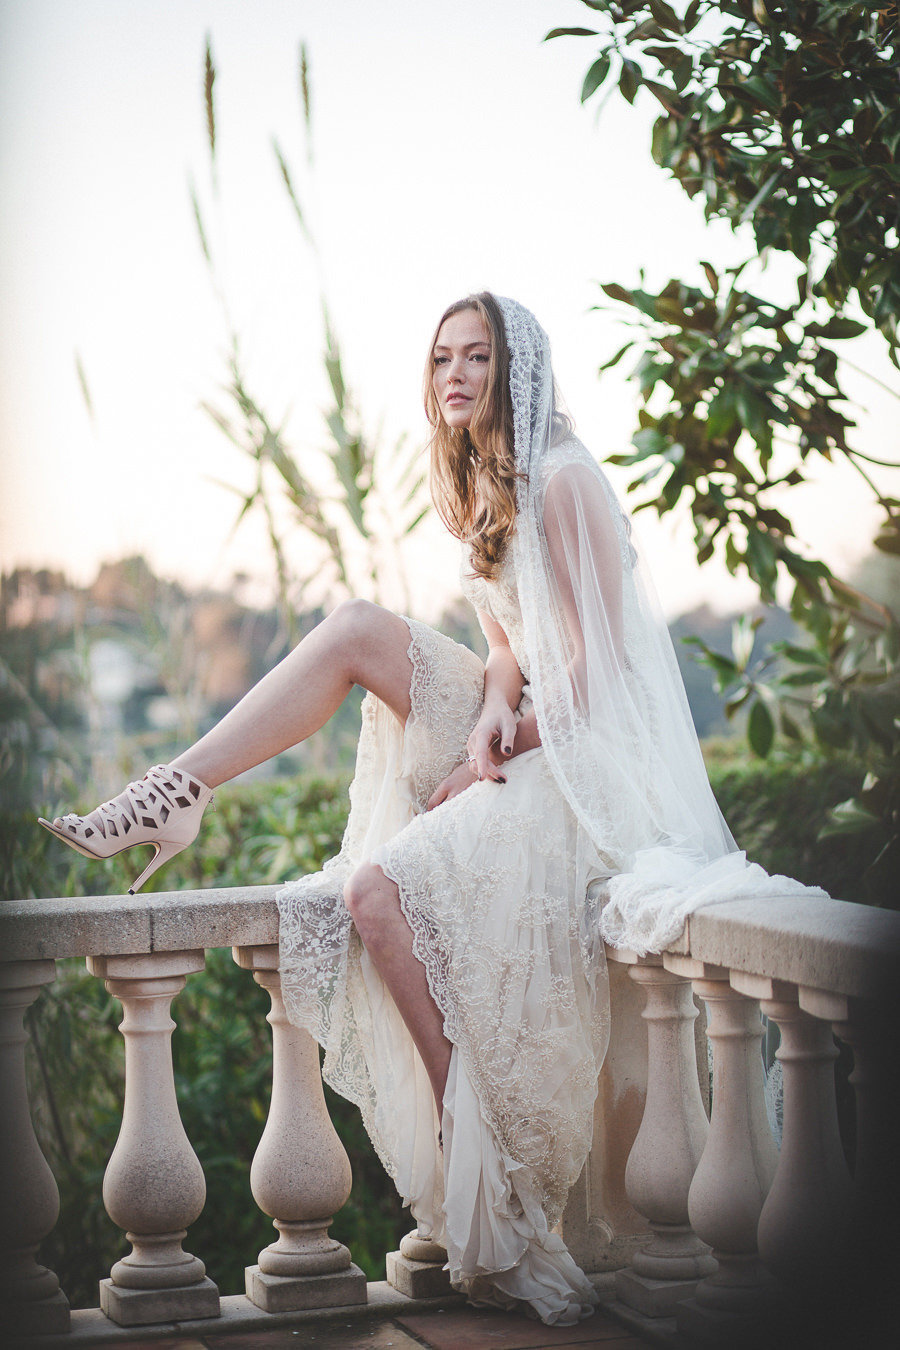 Artemis_champagne_beaded_lace_boho_wedding_dress_veil_JoanneFlemingDesign_ToneTvedtFoto2